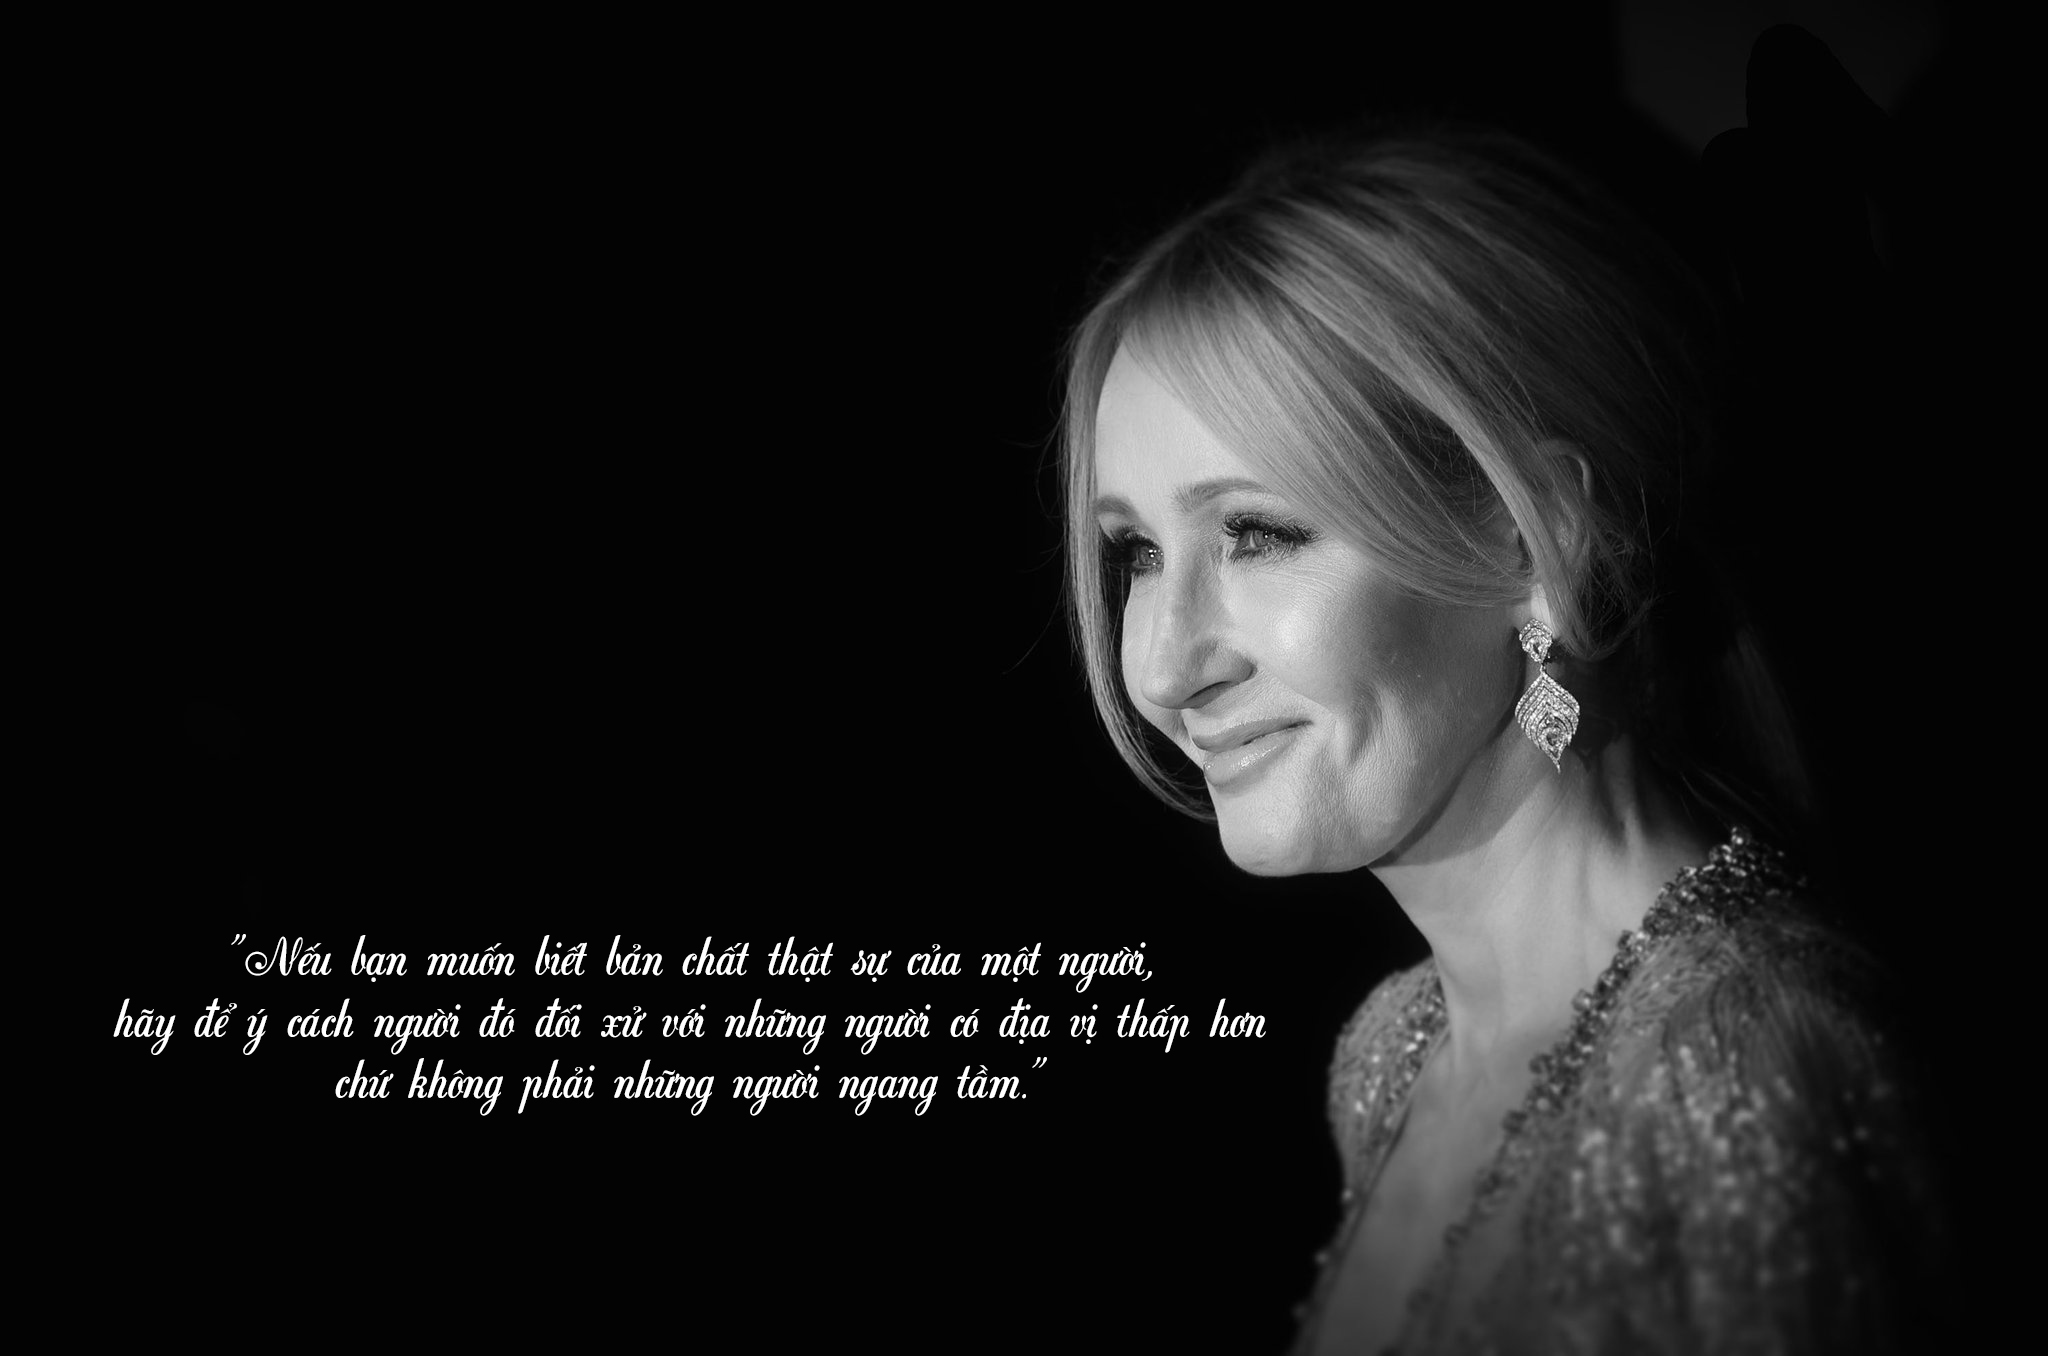 JK-Rowling-harry-potter-hinh-anh 13